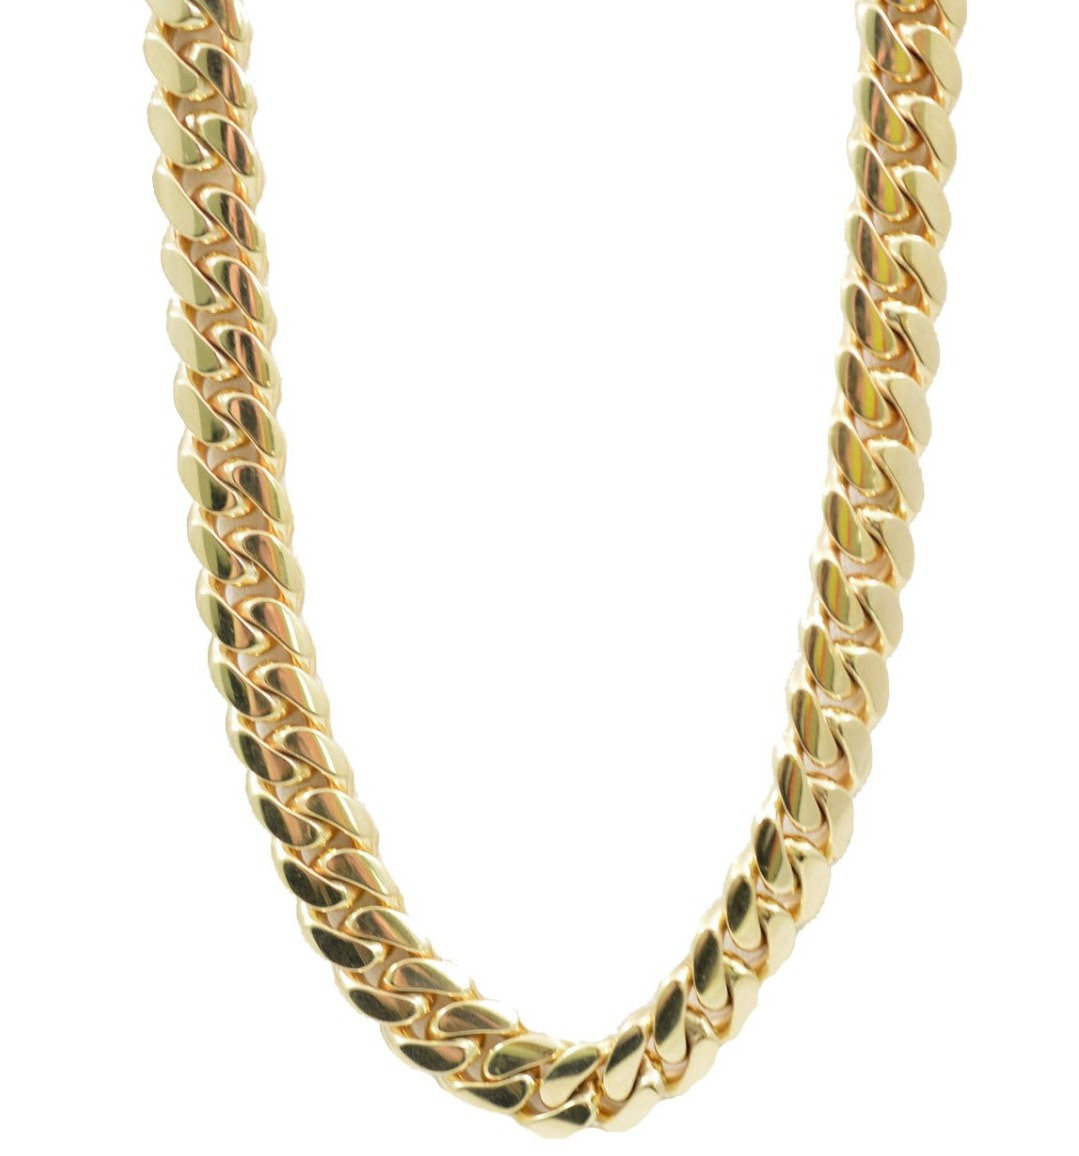 Cuban Link Chain For Sale >> 14k Solid Gold Miami Cuban Link Chain 9mm 136 Grams 22in